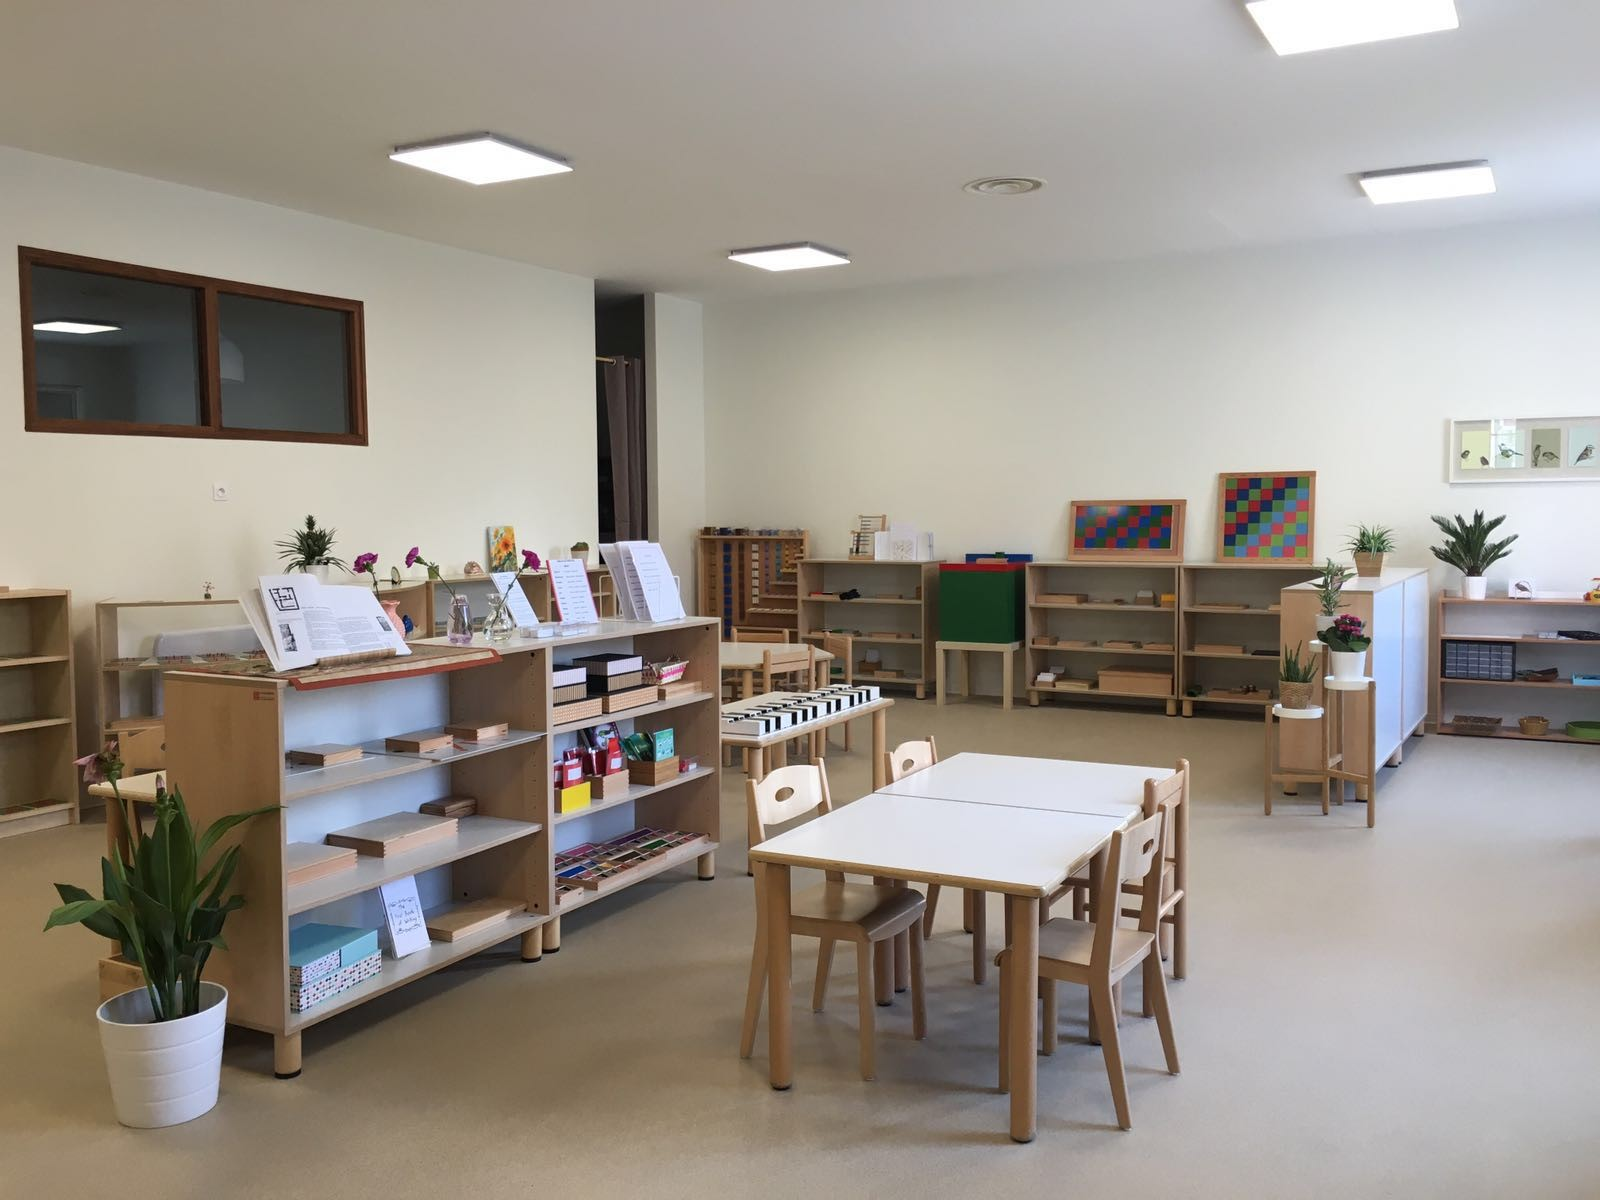 ecole petite section Beautiful Minds Ecole bilingue montessori